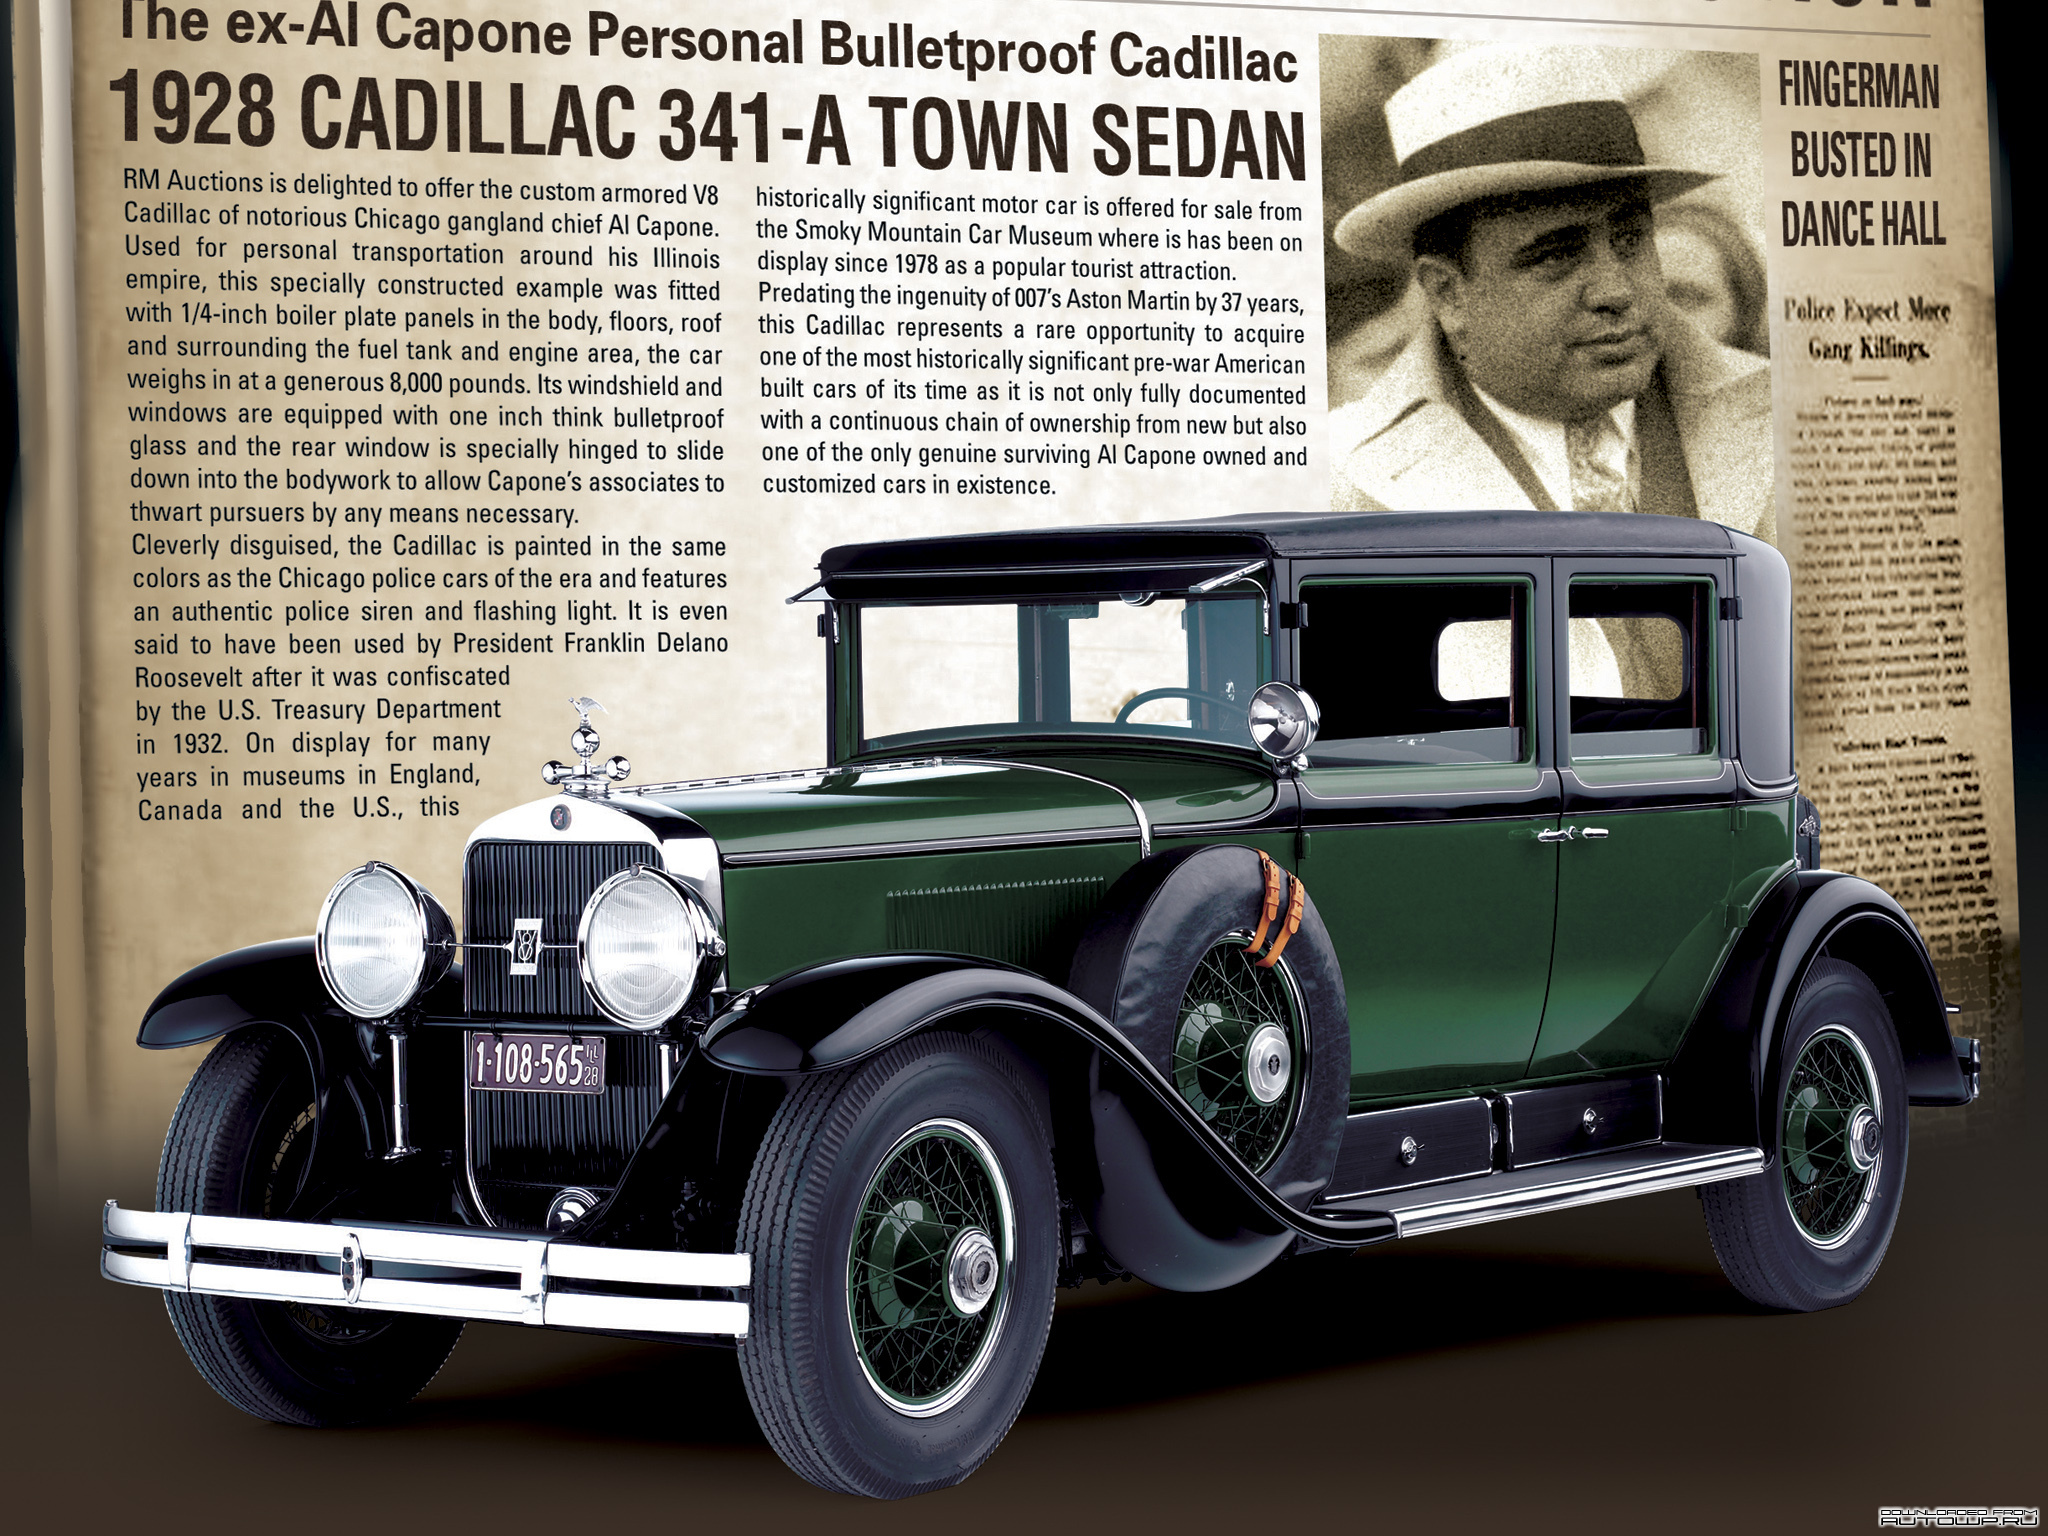 Images Cadillac V8 341-A Town Sedan Armored 1928 auto 2048x1536